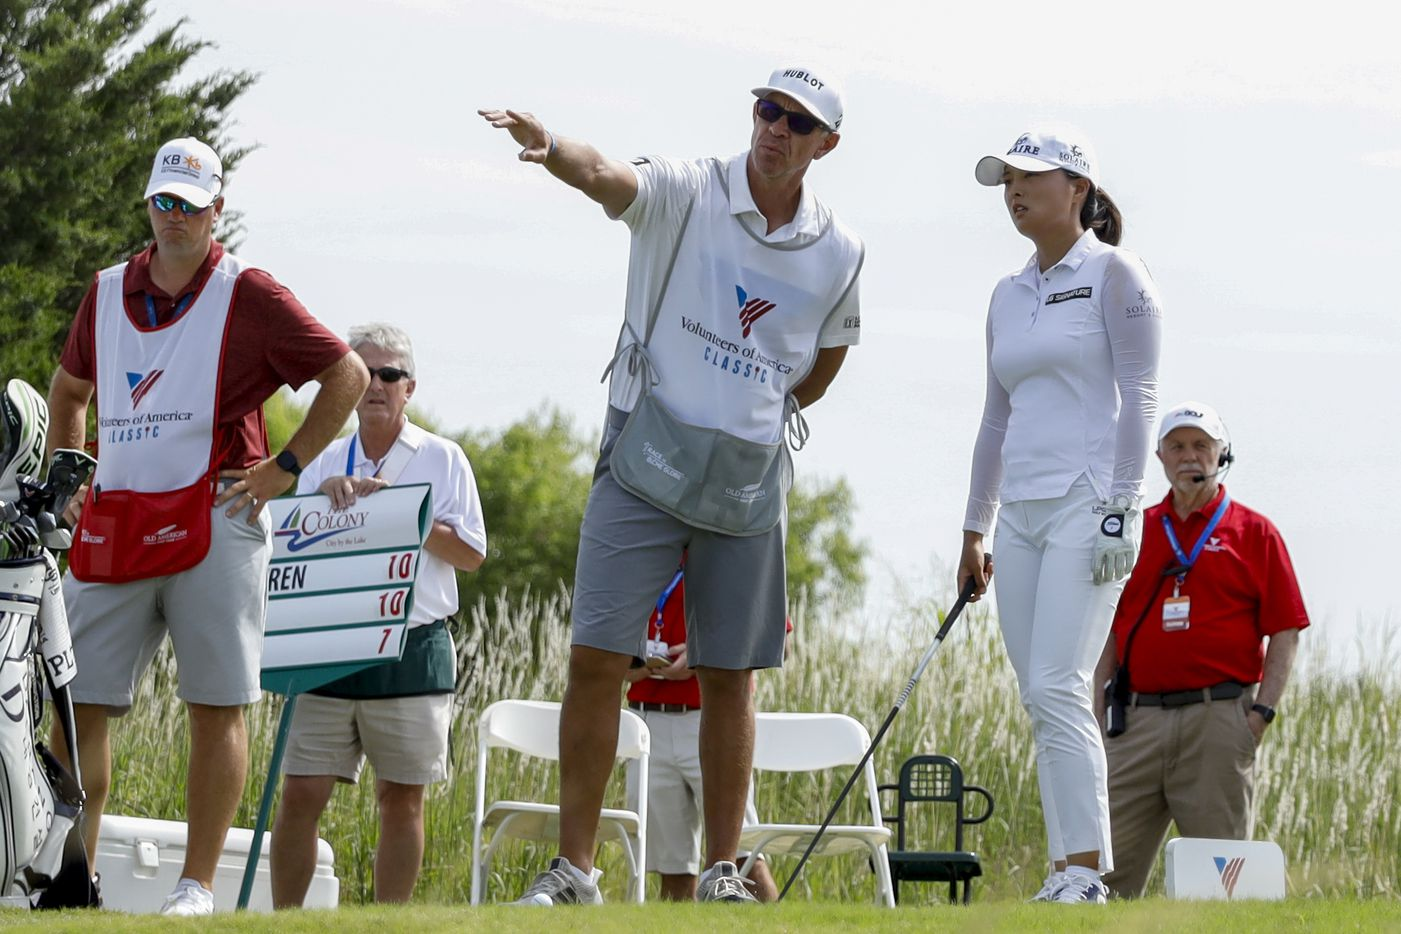 Professional golfer Jin Young Ko (right) talks with her caddie David Brooker prior to hitting off the No. 4 tee box during the third round of the LPGA VOA Classic on Saturday, July 3, 2021, in The Colony, Texas. (Elias Valverde II/The Dallas Morning News)